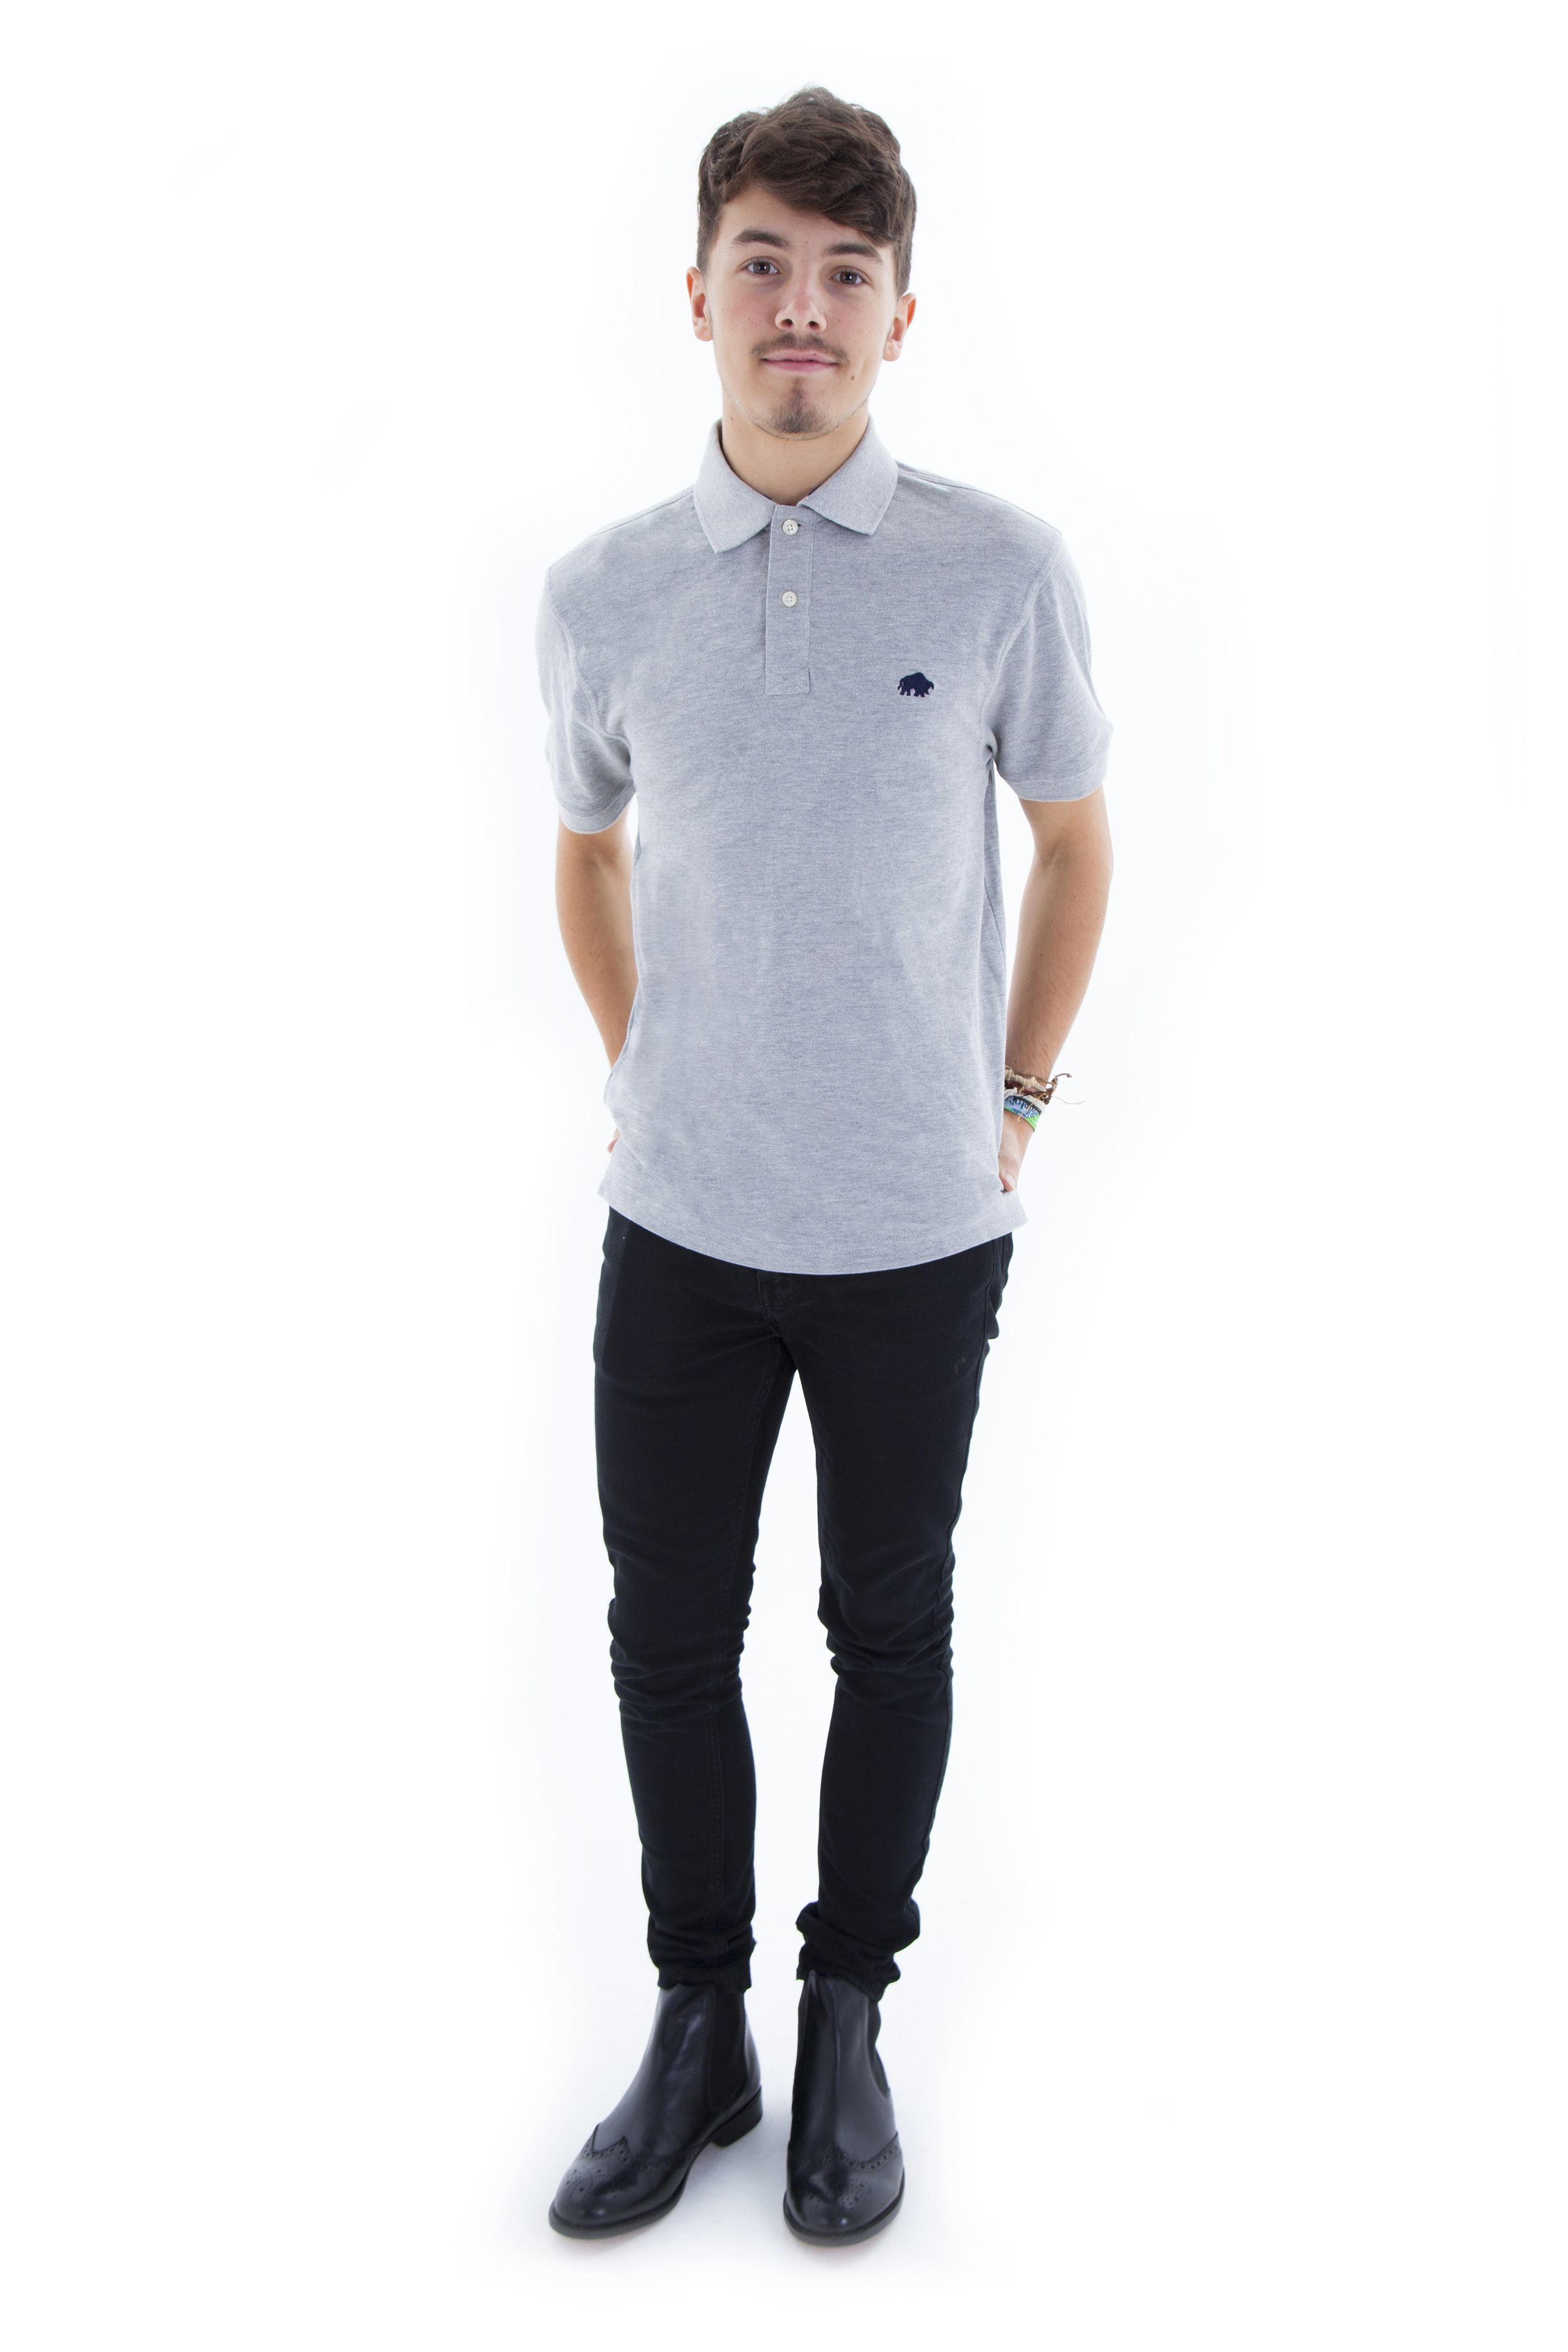 6c0a739d954 Raging Bull polo shirt and Gucinari G-1202 chelsea boots